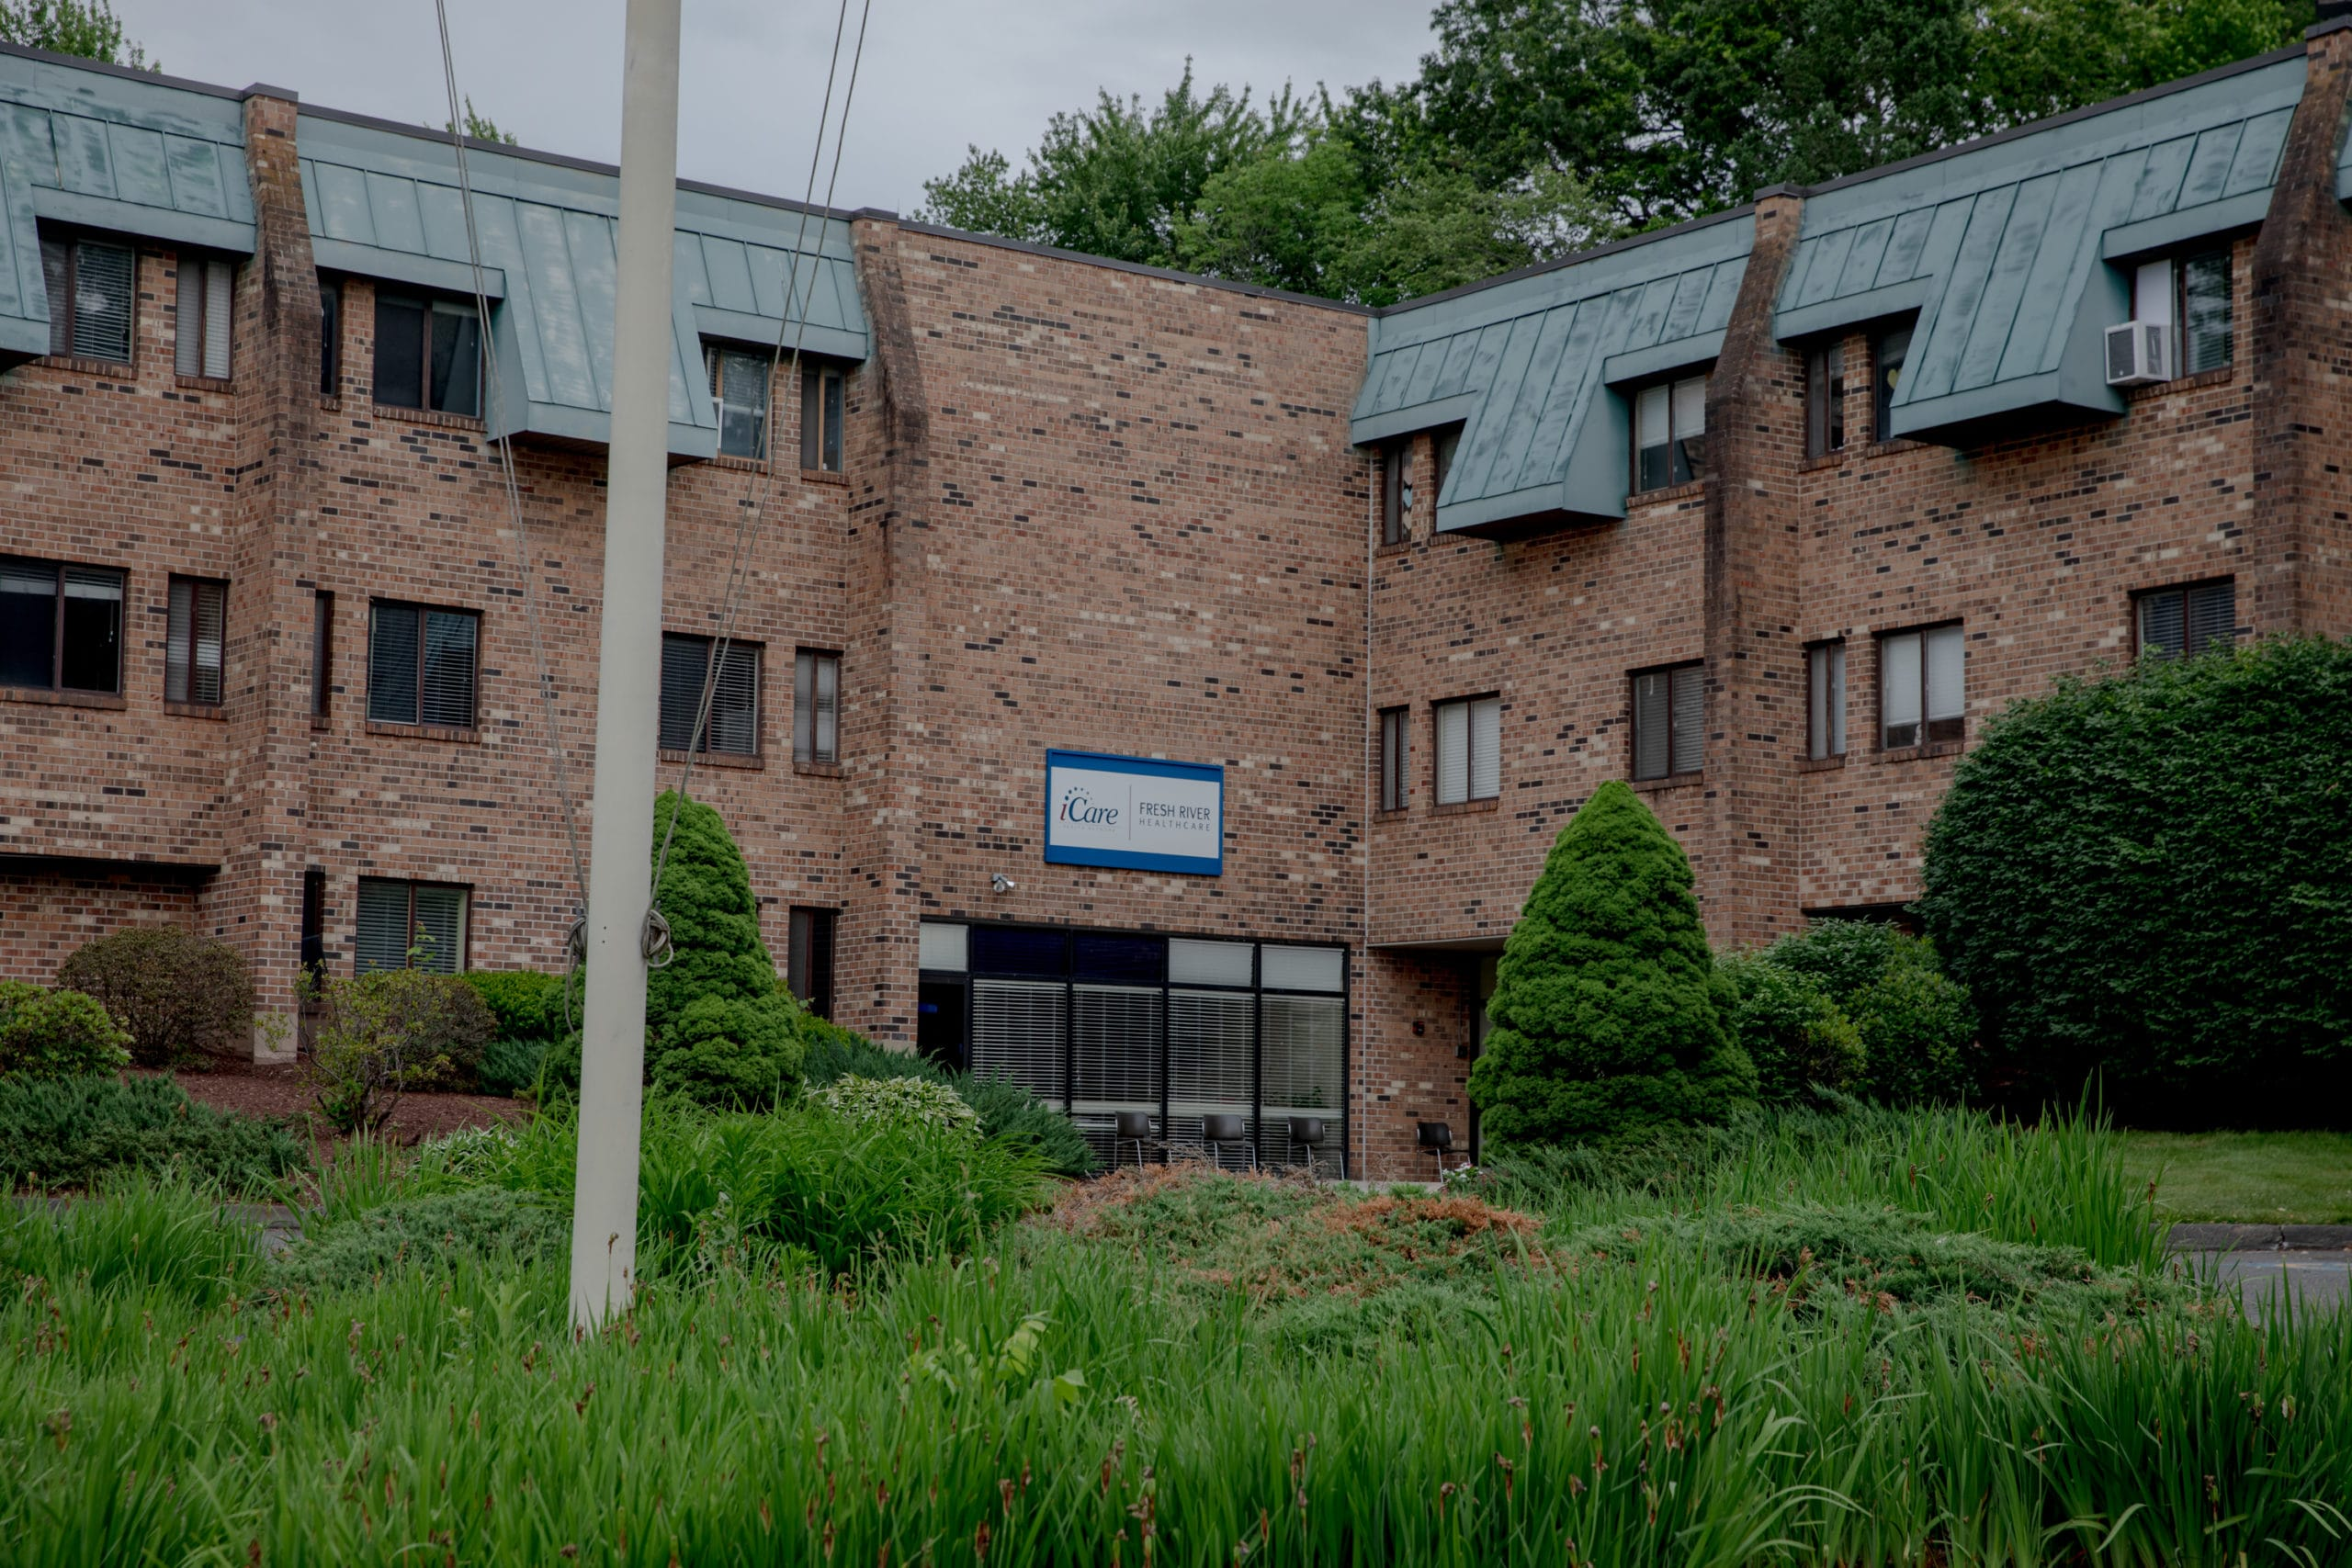 A convicted rapist was accused of sex assault at an East Windsor nursing home. Police had no idea he was there.